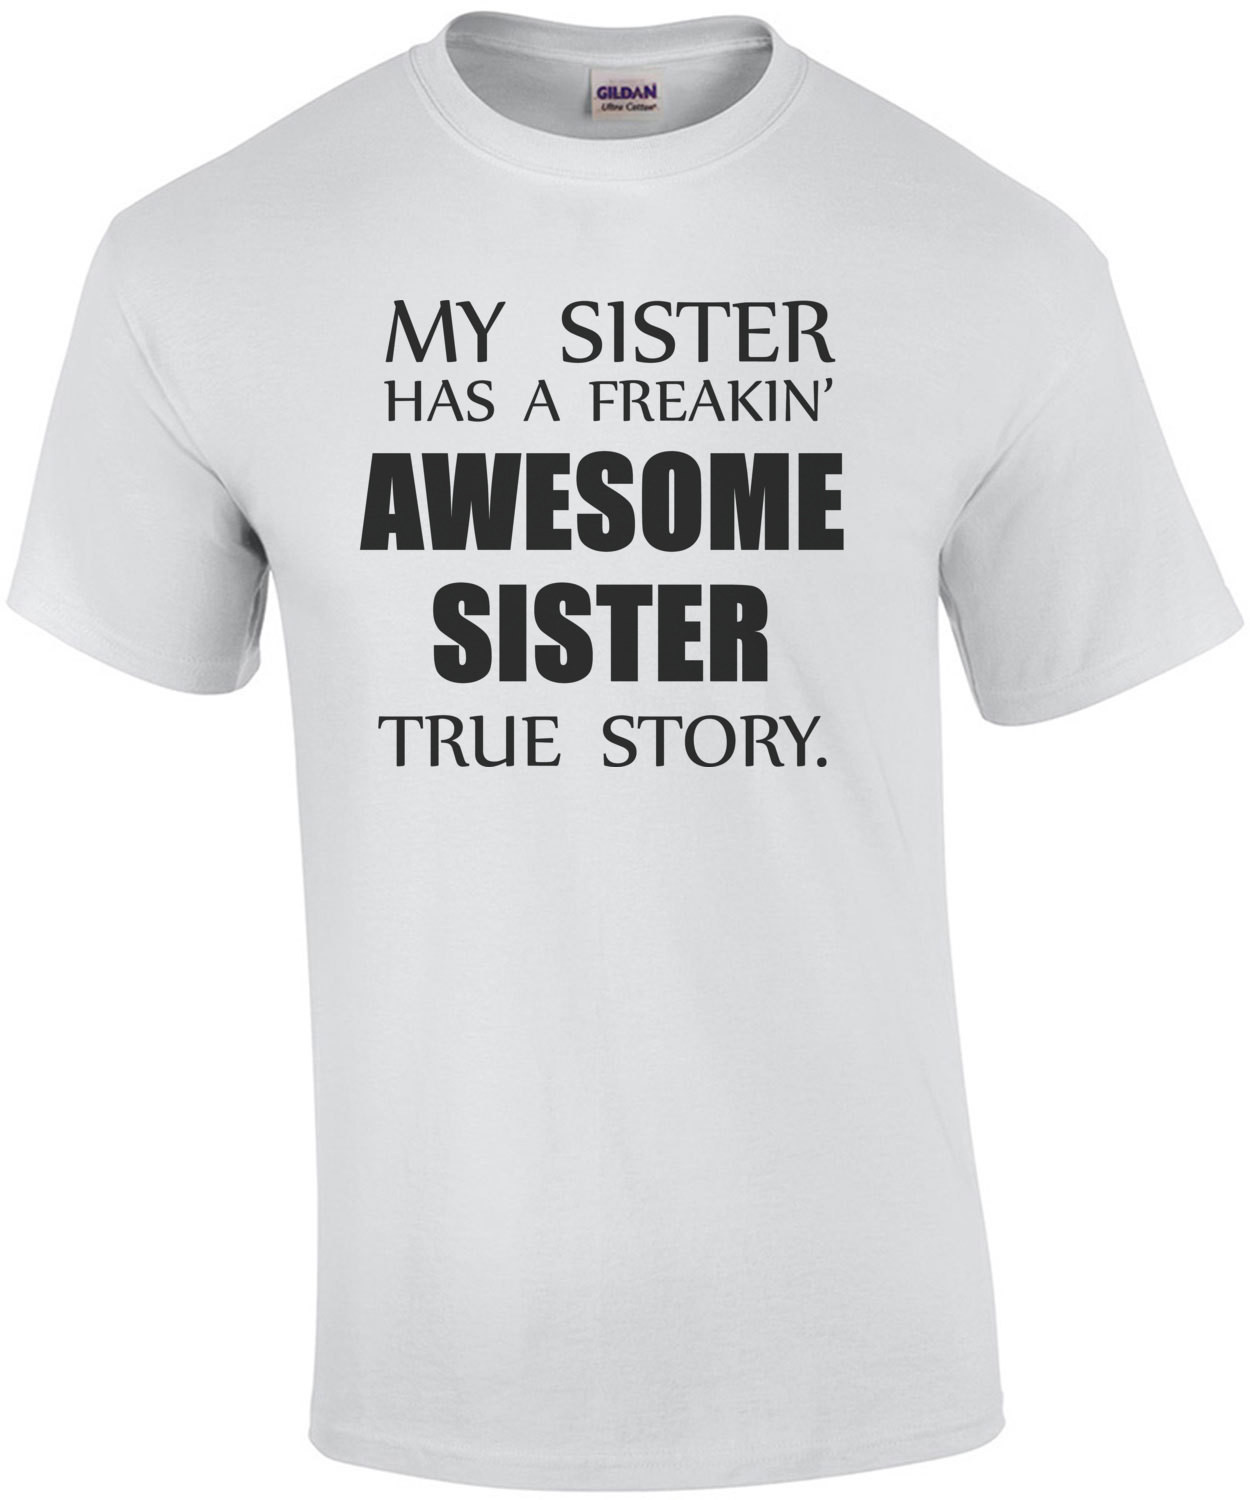 My sister has a freakin' awesome sister true story